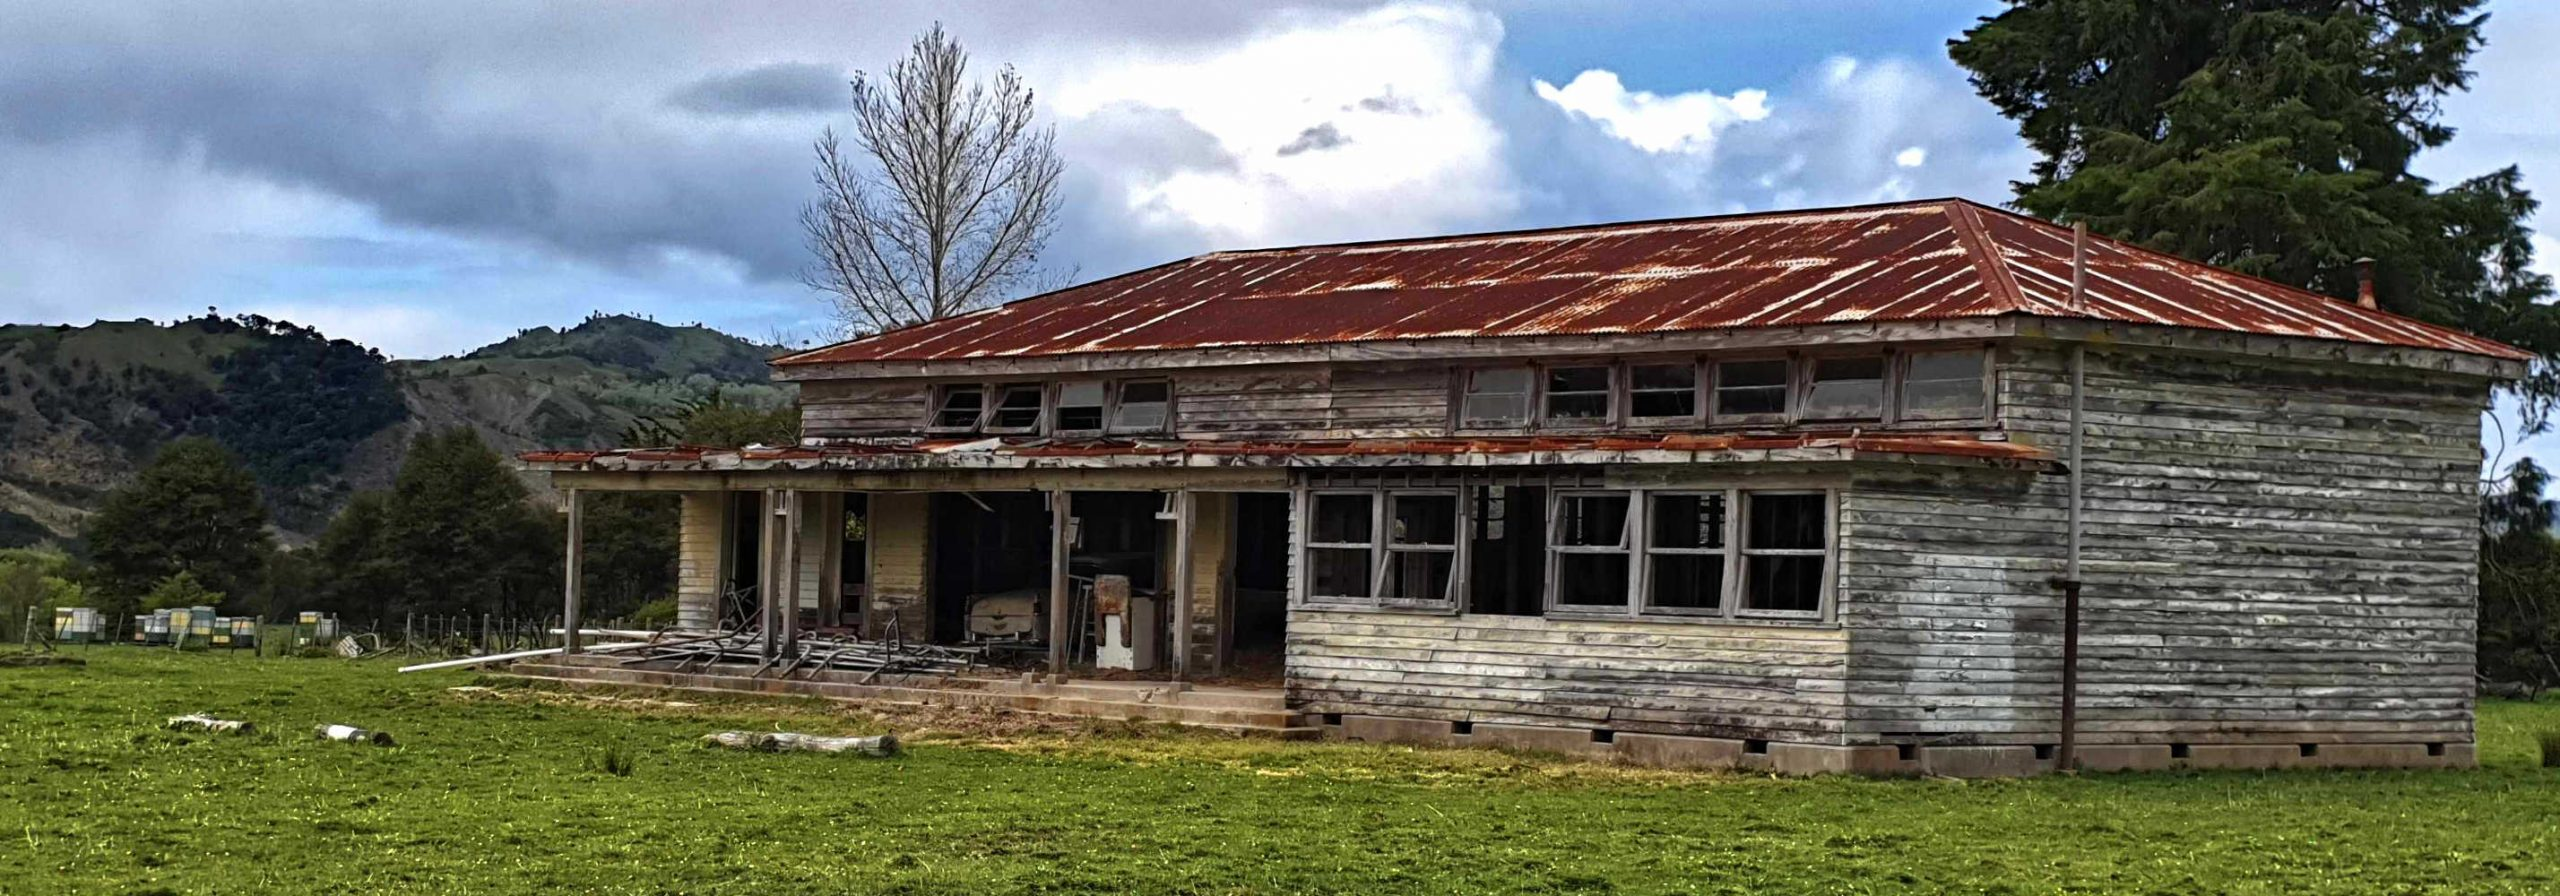 East Cape abandoned farmhouse, complete with abandoned washing machine and honey hives in nearby field,New Zealand